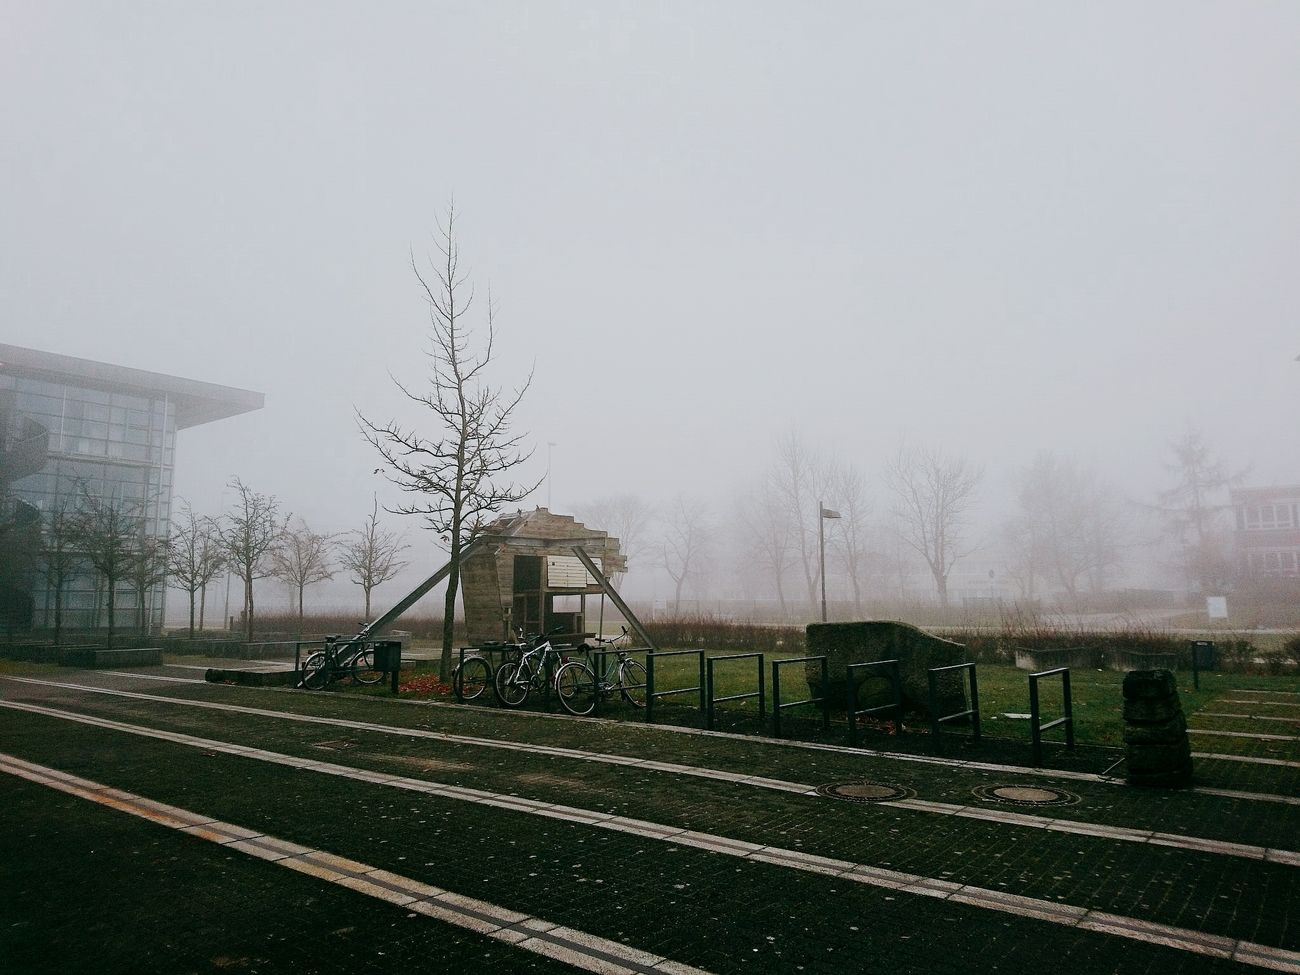 Foggy Day Infront Of The Building Trees Cannot See Front Stopby Structure Of Wood Bikes Smartphonephotography Cottbus Germany Btu Cottbus German Weather